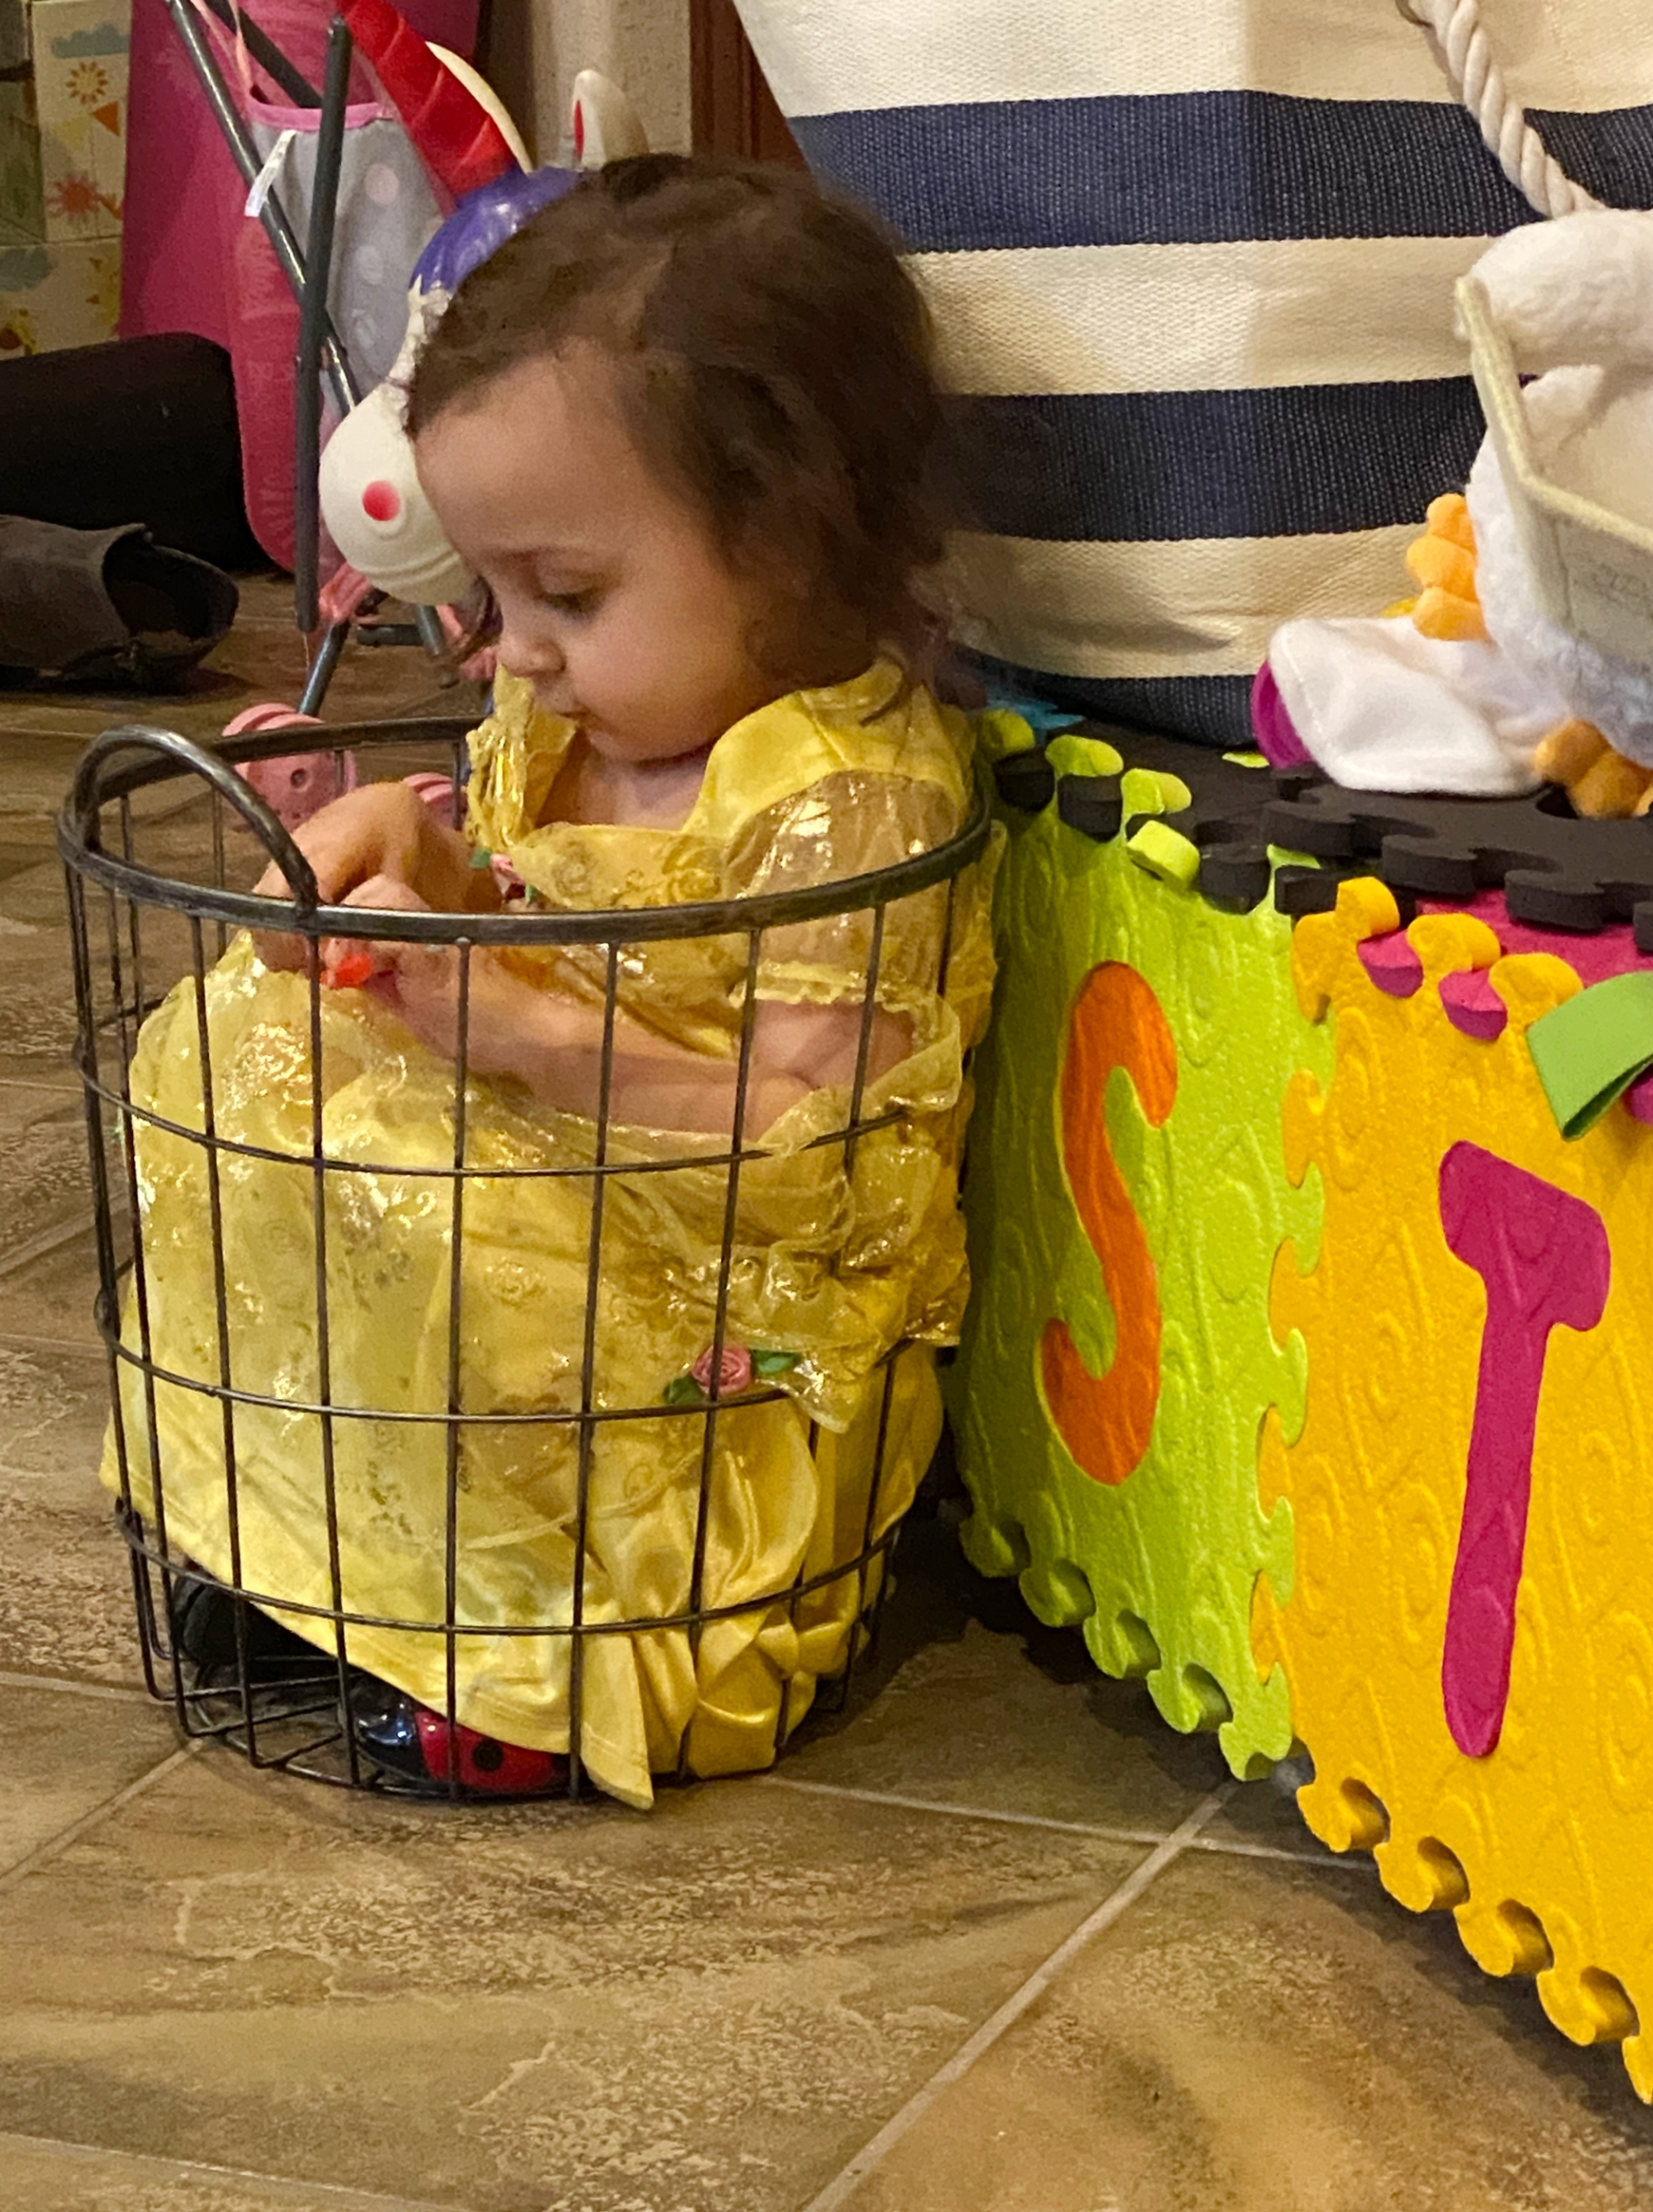 Granddaughter in waste basket